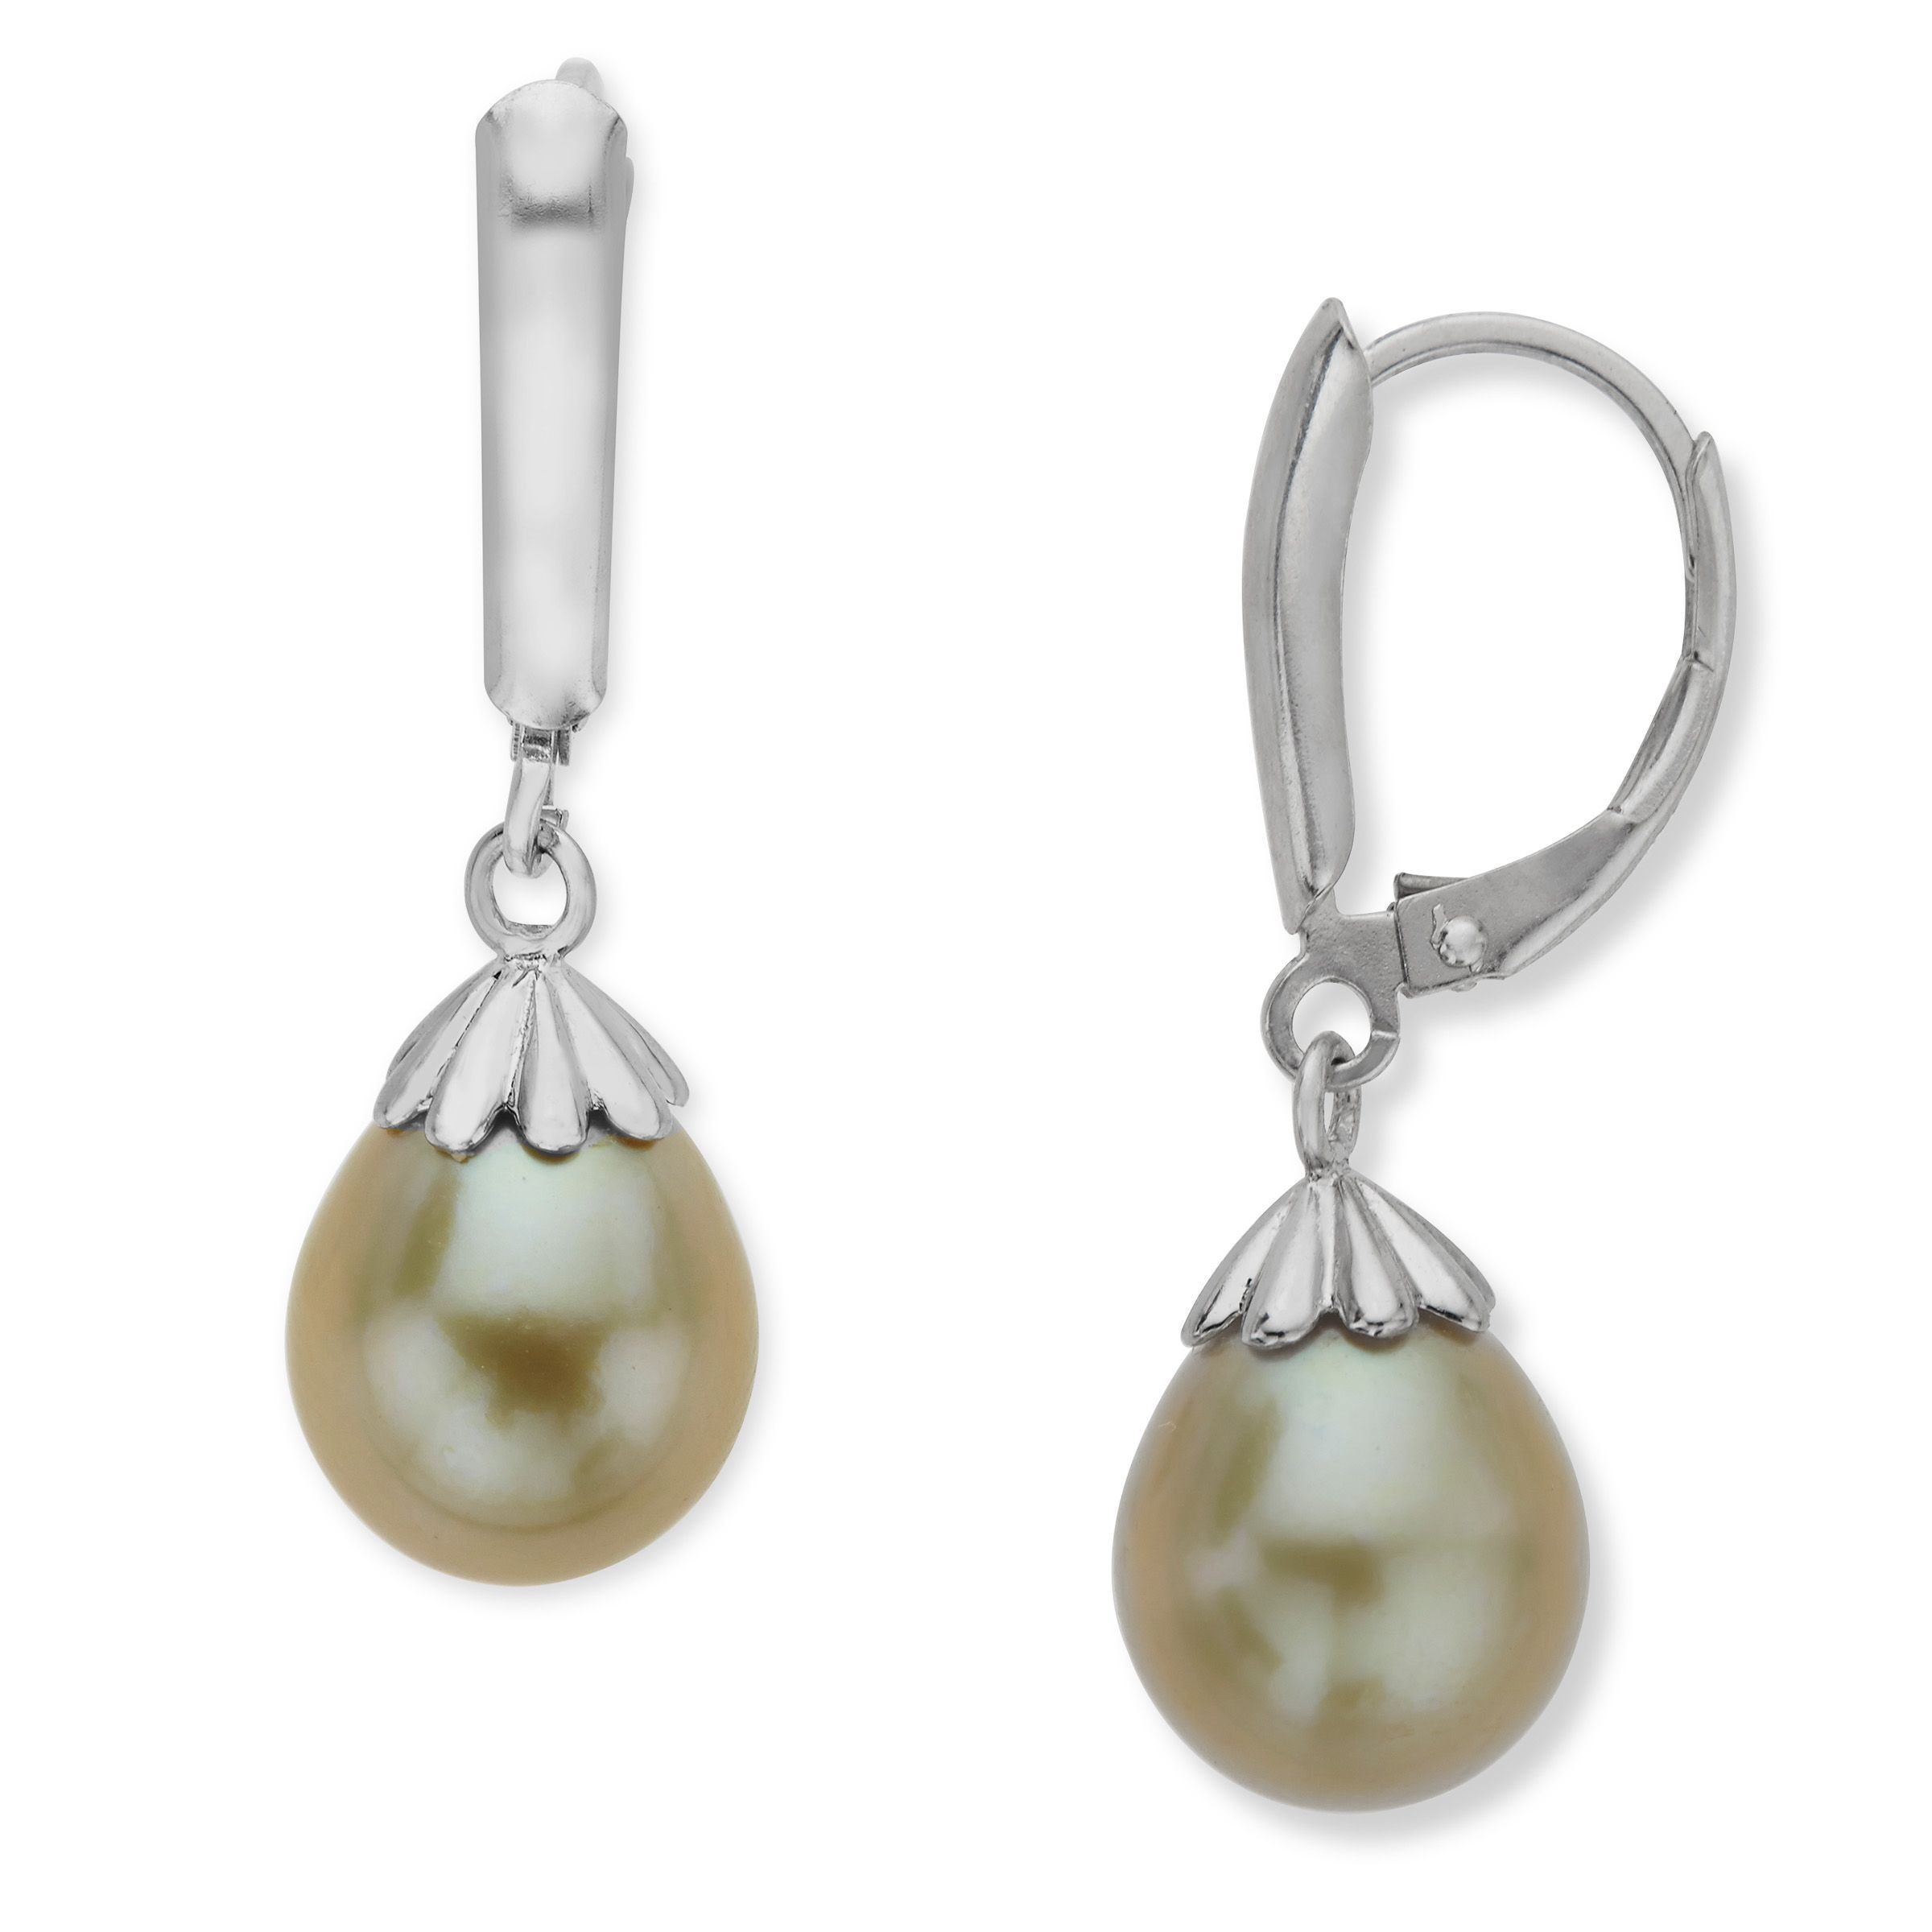 620827969 Details about Honora 9-9.5mm Kiwi Freshwater Pearl Drop Earrings in Sterling  Silver